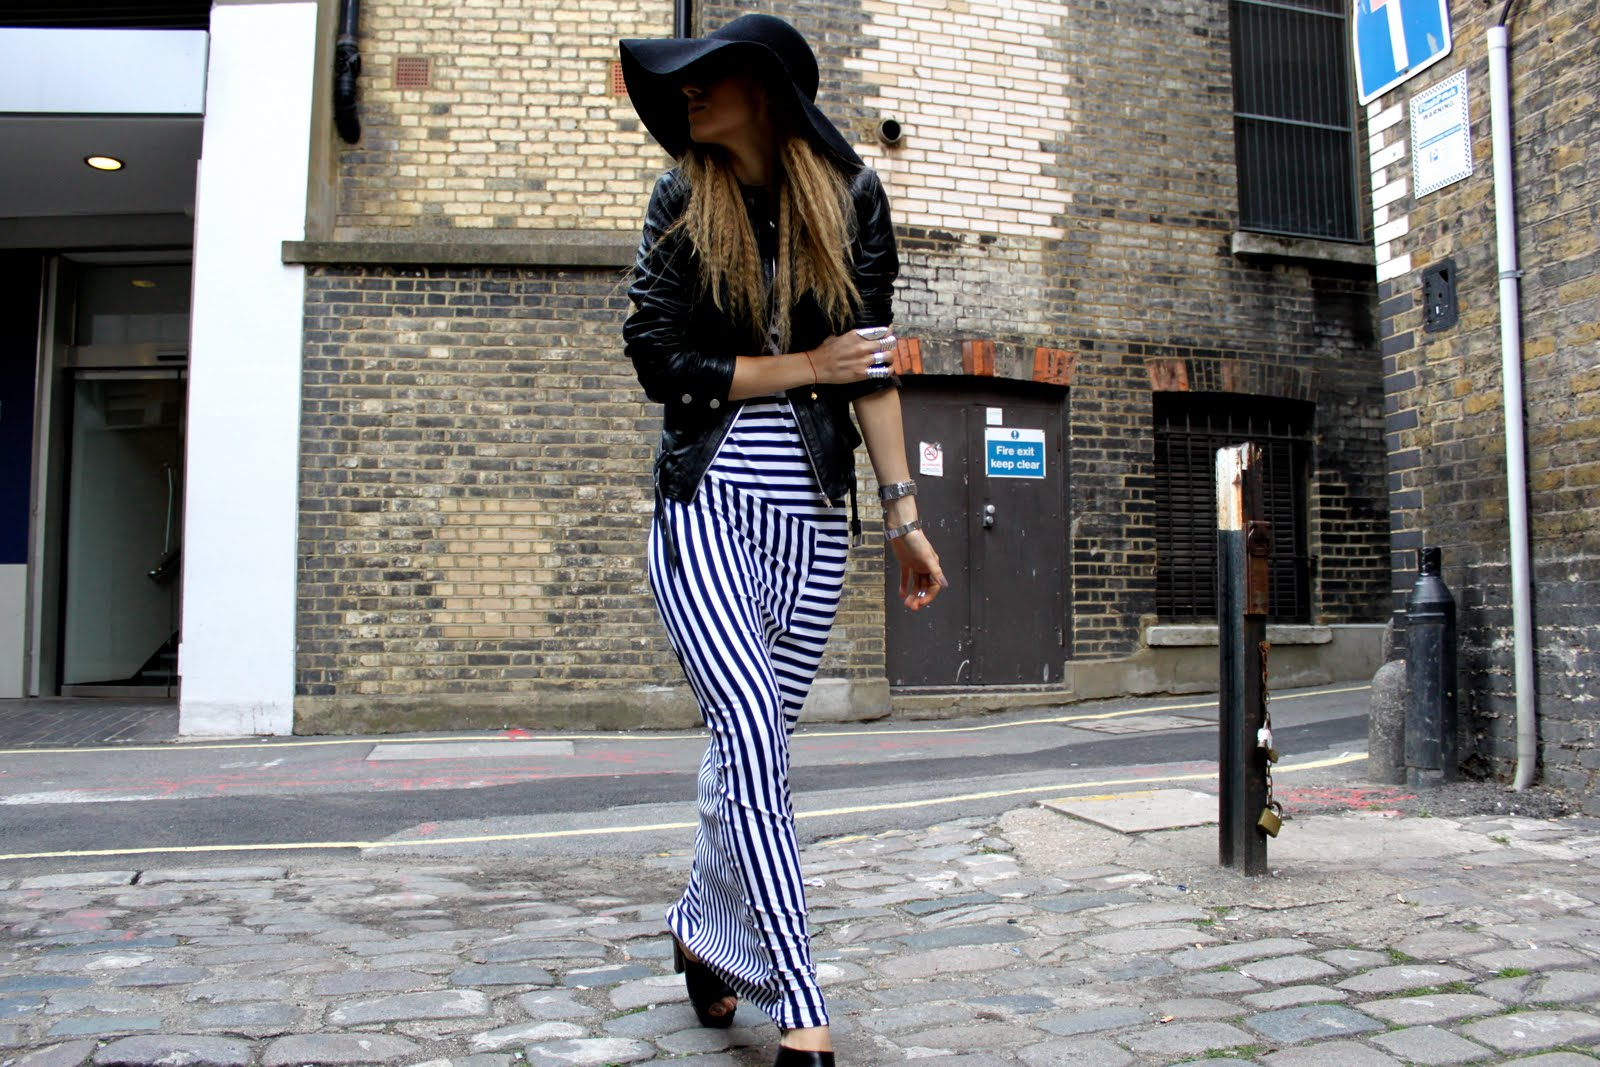 http://3.bp.blogspot.com/_wt2s3LZZI7M/TB5Bl5WTh_I/AAAAAAAAJWQ/sUS3JPHoWRk/s1600/5-inch-and-up-blog-primark-acne-striped-dress-american-apparel-floppy-hat-zara-clogs-6.JPG